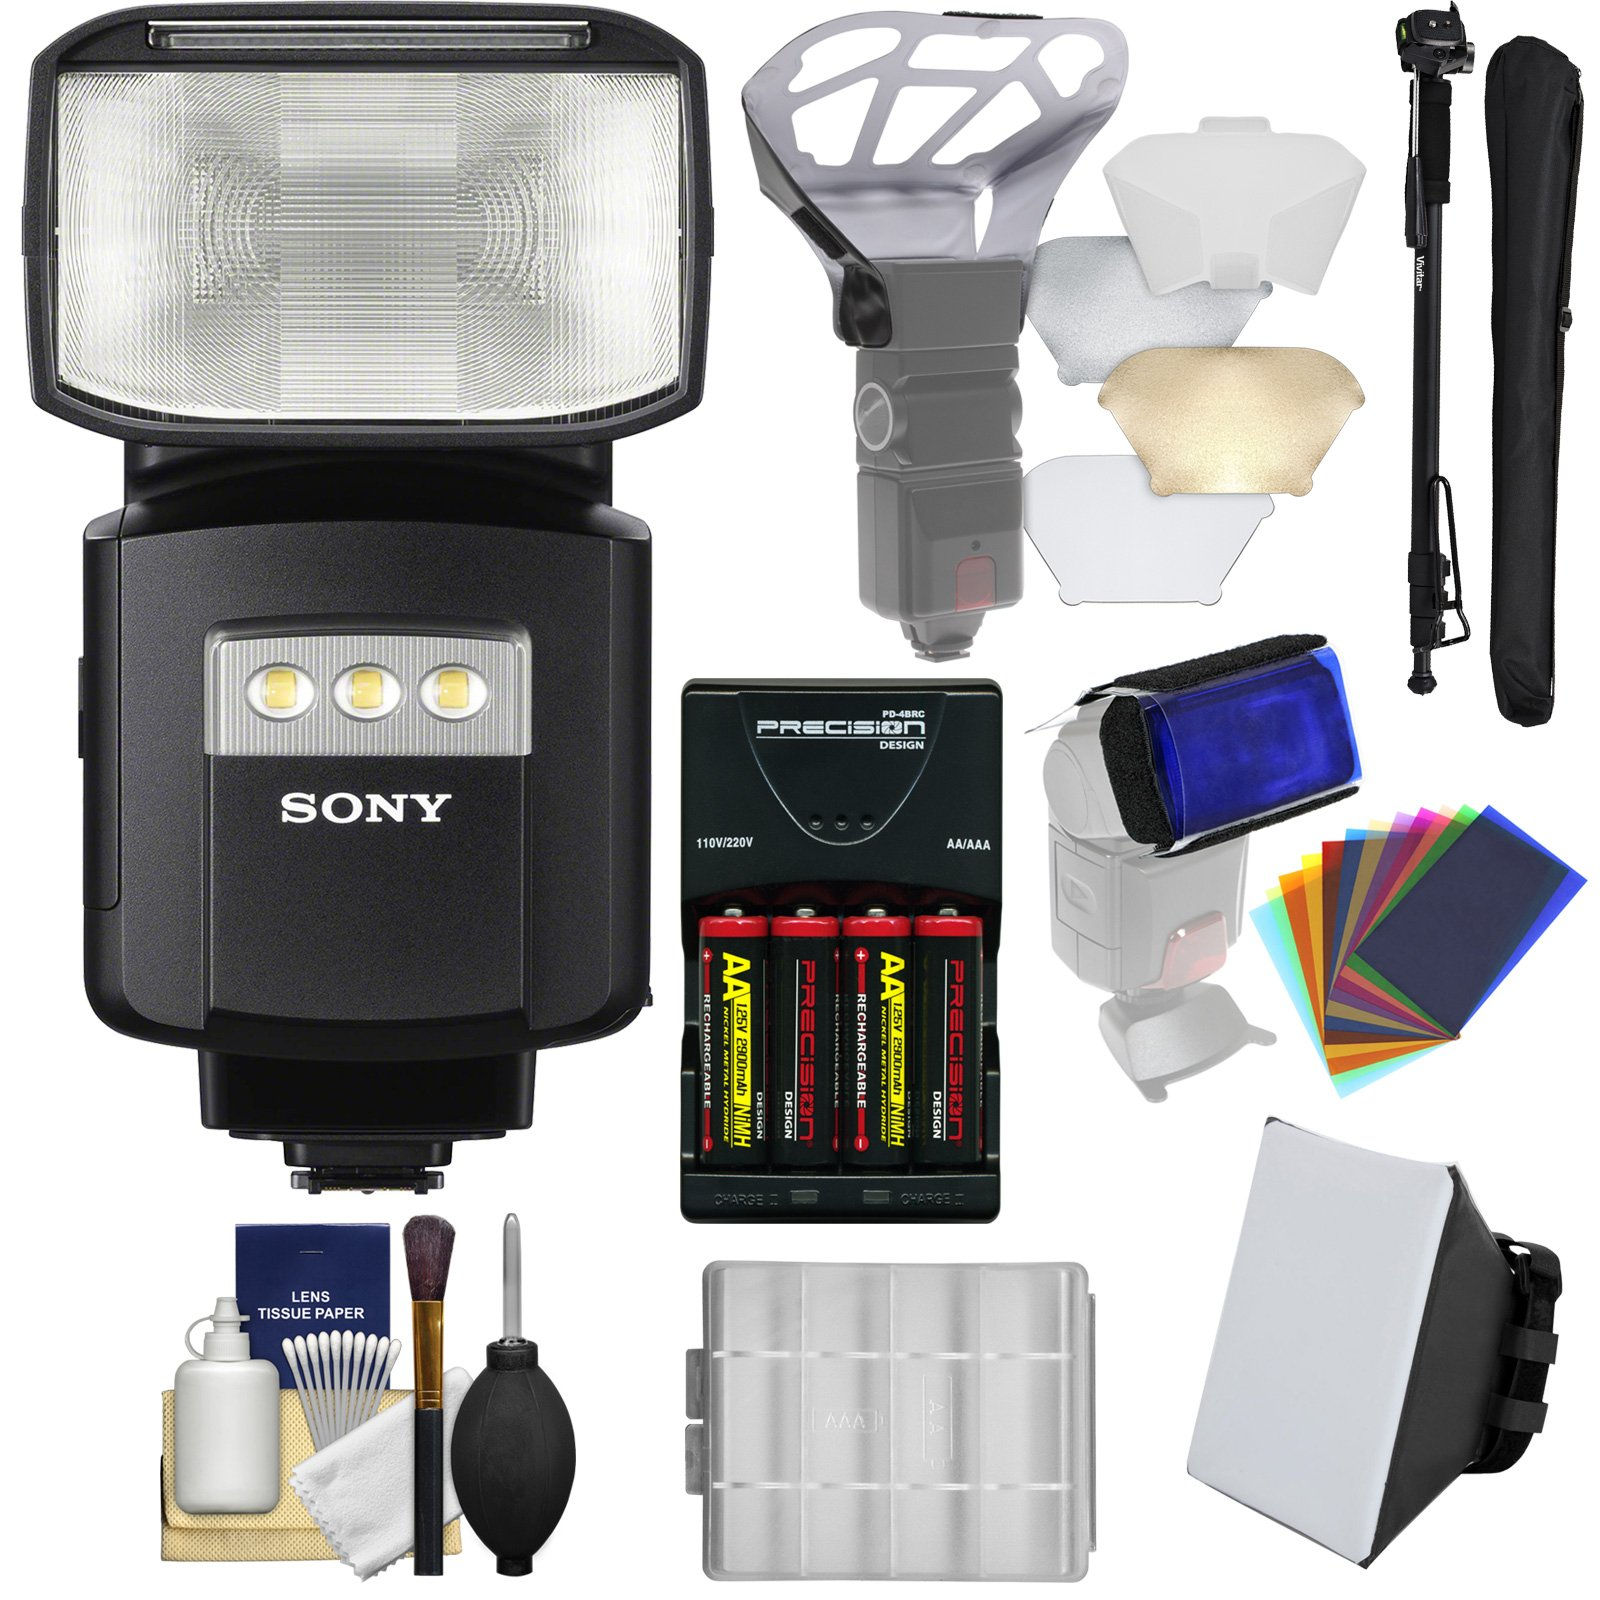 Sony Alpha HVL-F60RM Radio-Control Wireless Flash with Video Light + Soft Box + Bouncer + Color Gels + Batteries & Charger + Monopod Kit by Sony